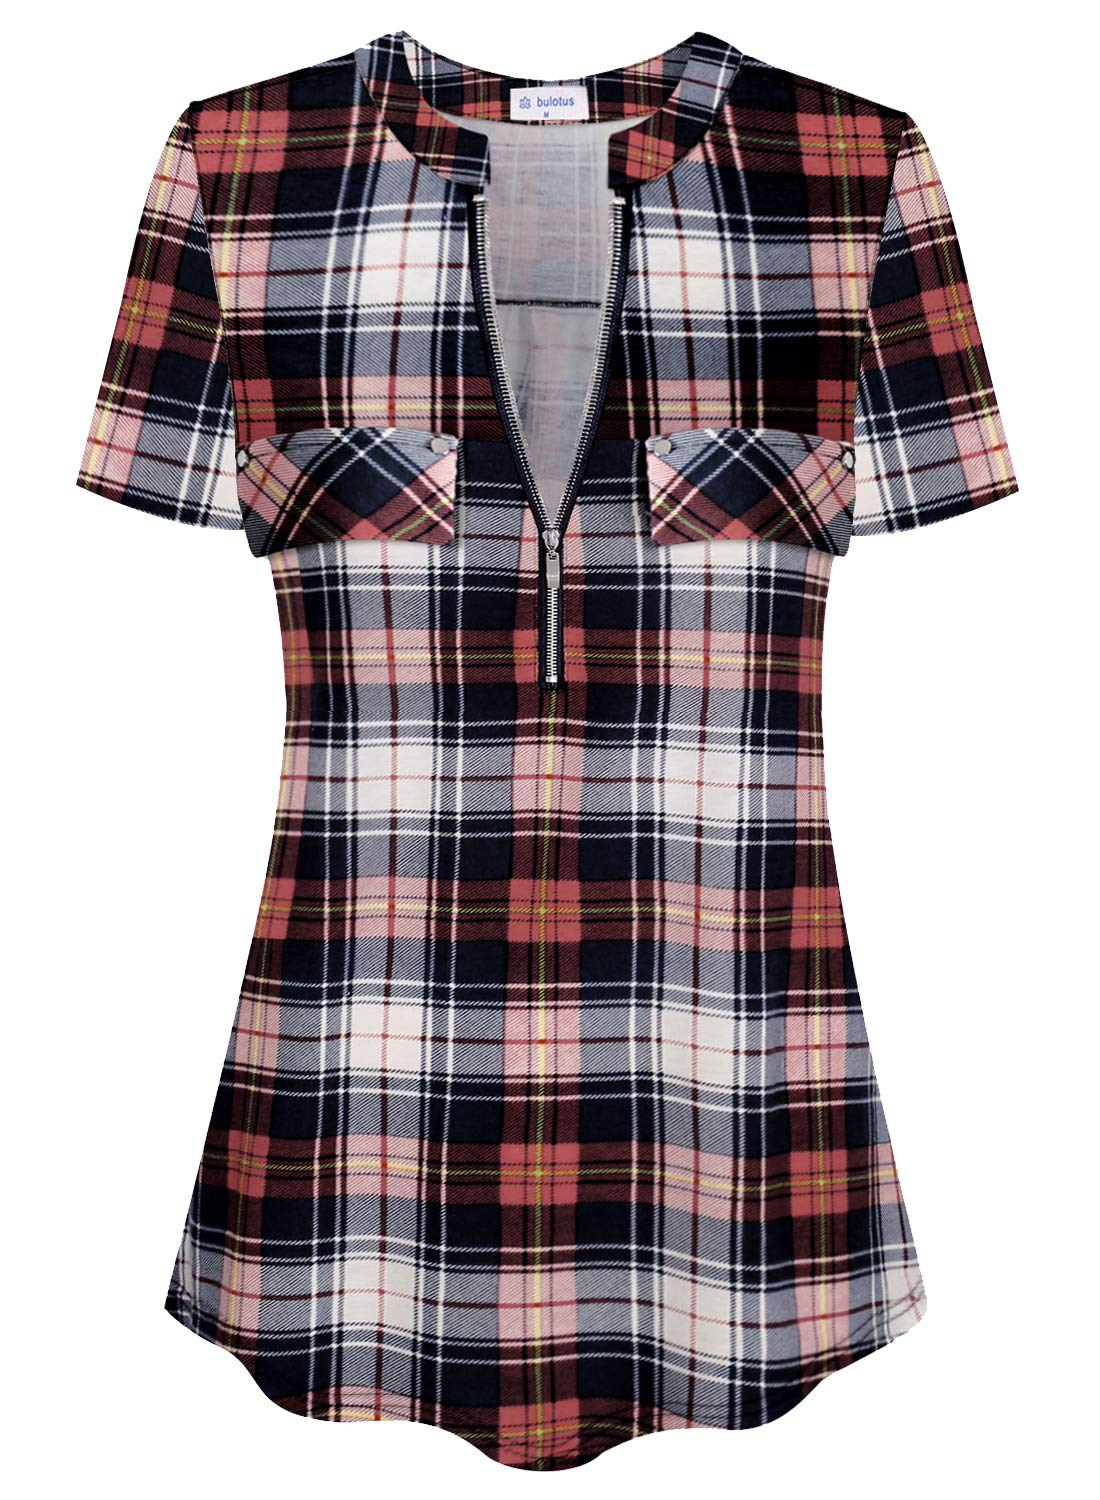 Bulotus Women's Zip Front V-Neck Short Sleeve Work Casual Top Blouse Shirt (Solid and Plaid)